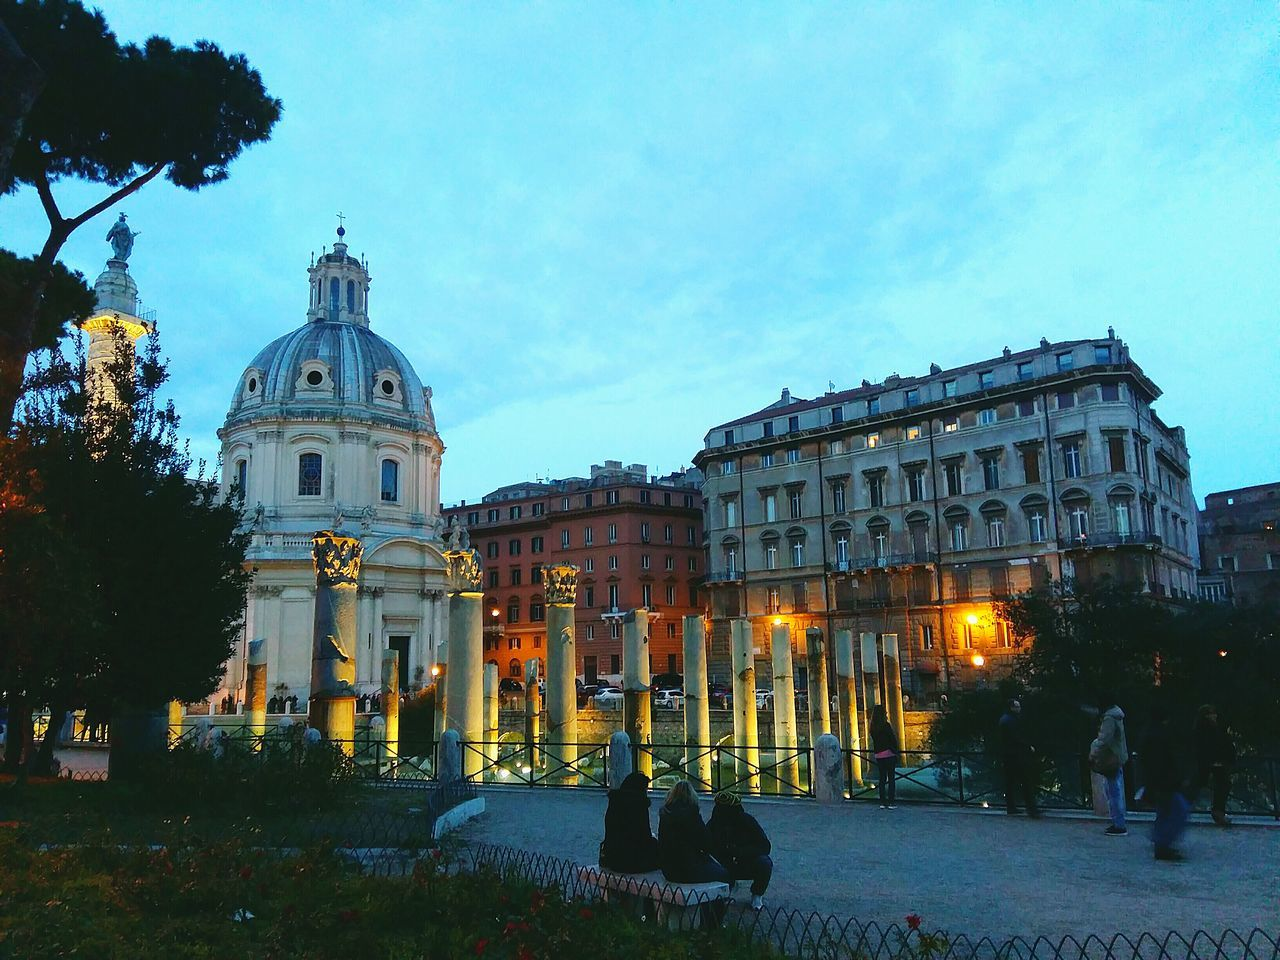 Rome, Fori Imperiali Rome Rome Italy Rome, Italy Architecture Illuminated Night Dusk City Twilight Travel Destinations Building Exterior Tree Sky Town Square Travel History Sunset Outdoors No People Cityscape Christmas Tree Picoftheday Adapted To The City Coffe Time Protection